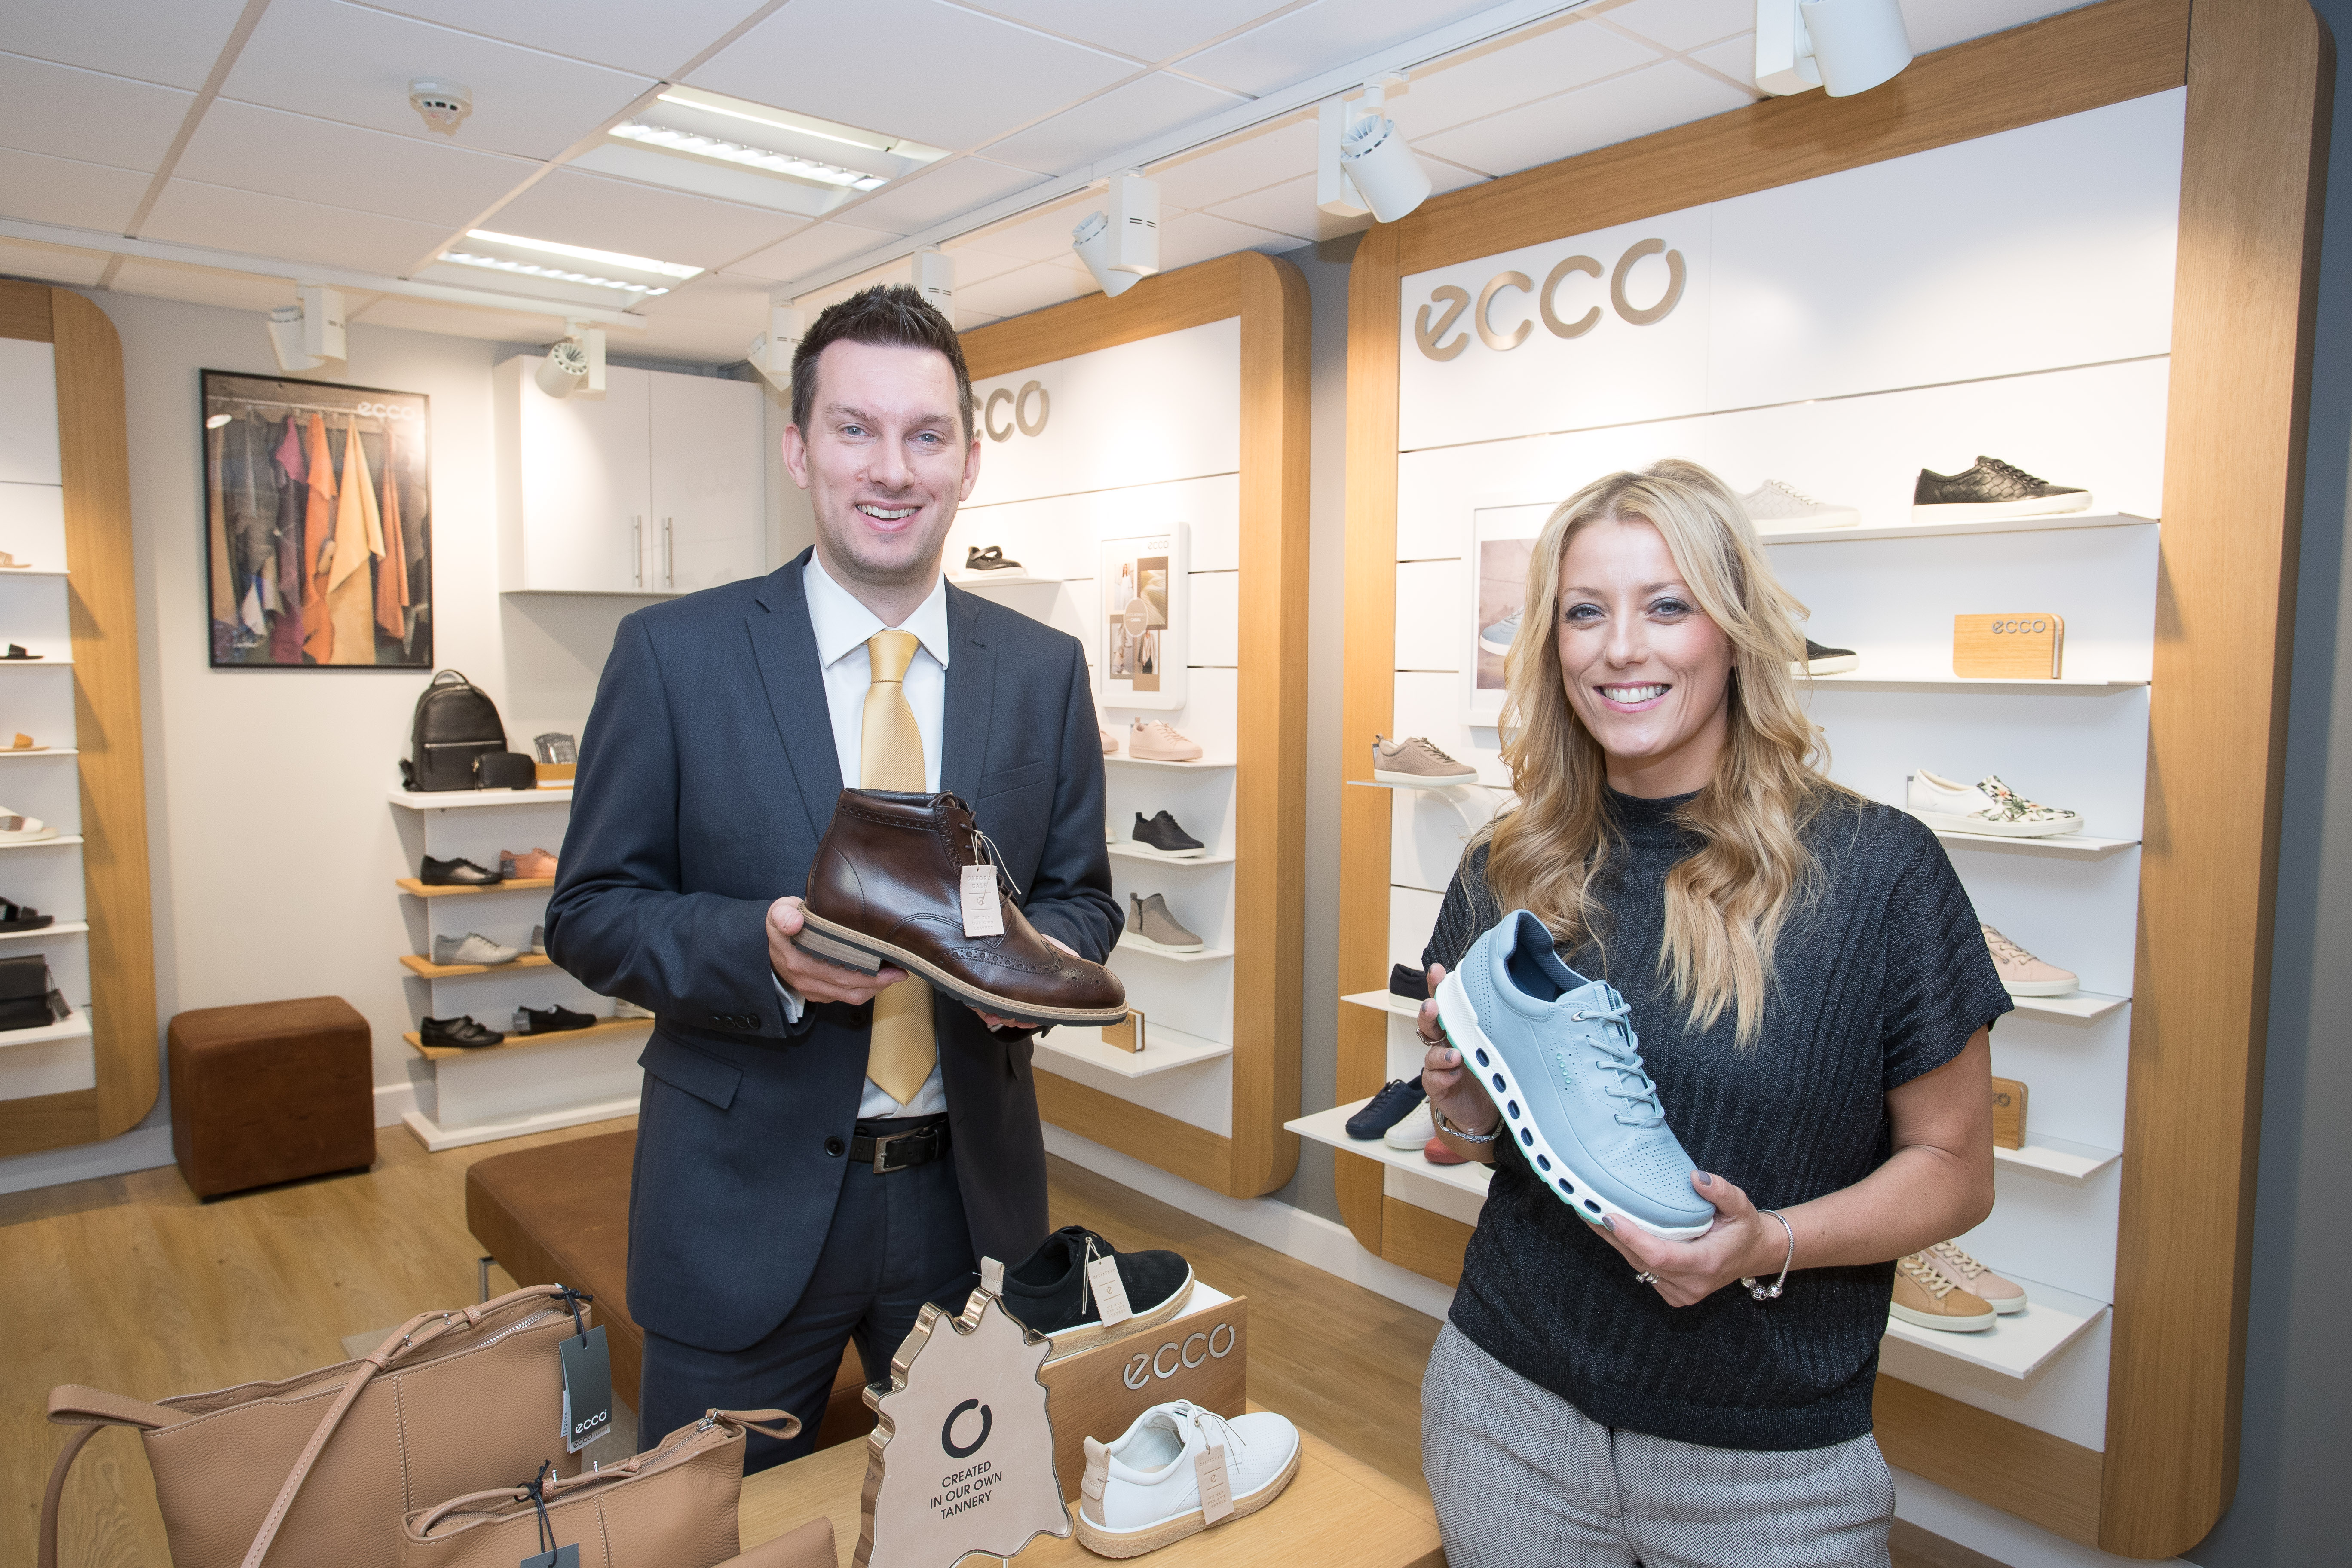 ECCO Shoes put best foot forward with